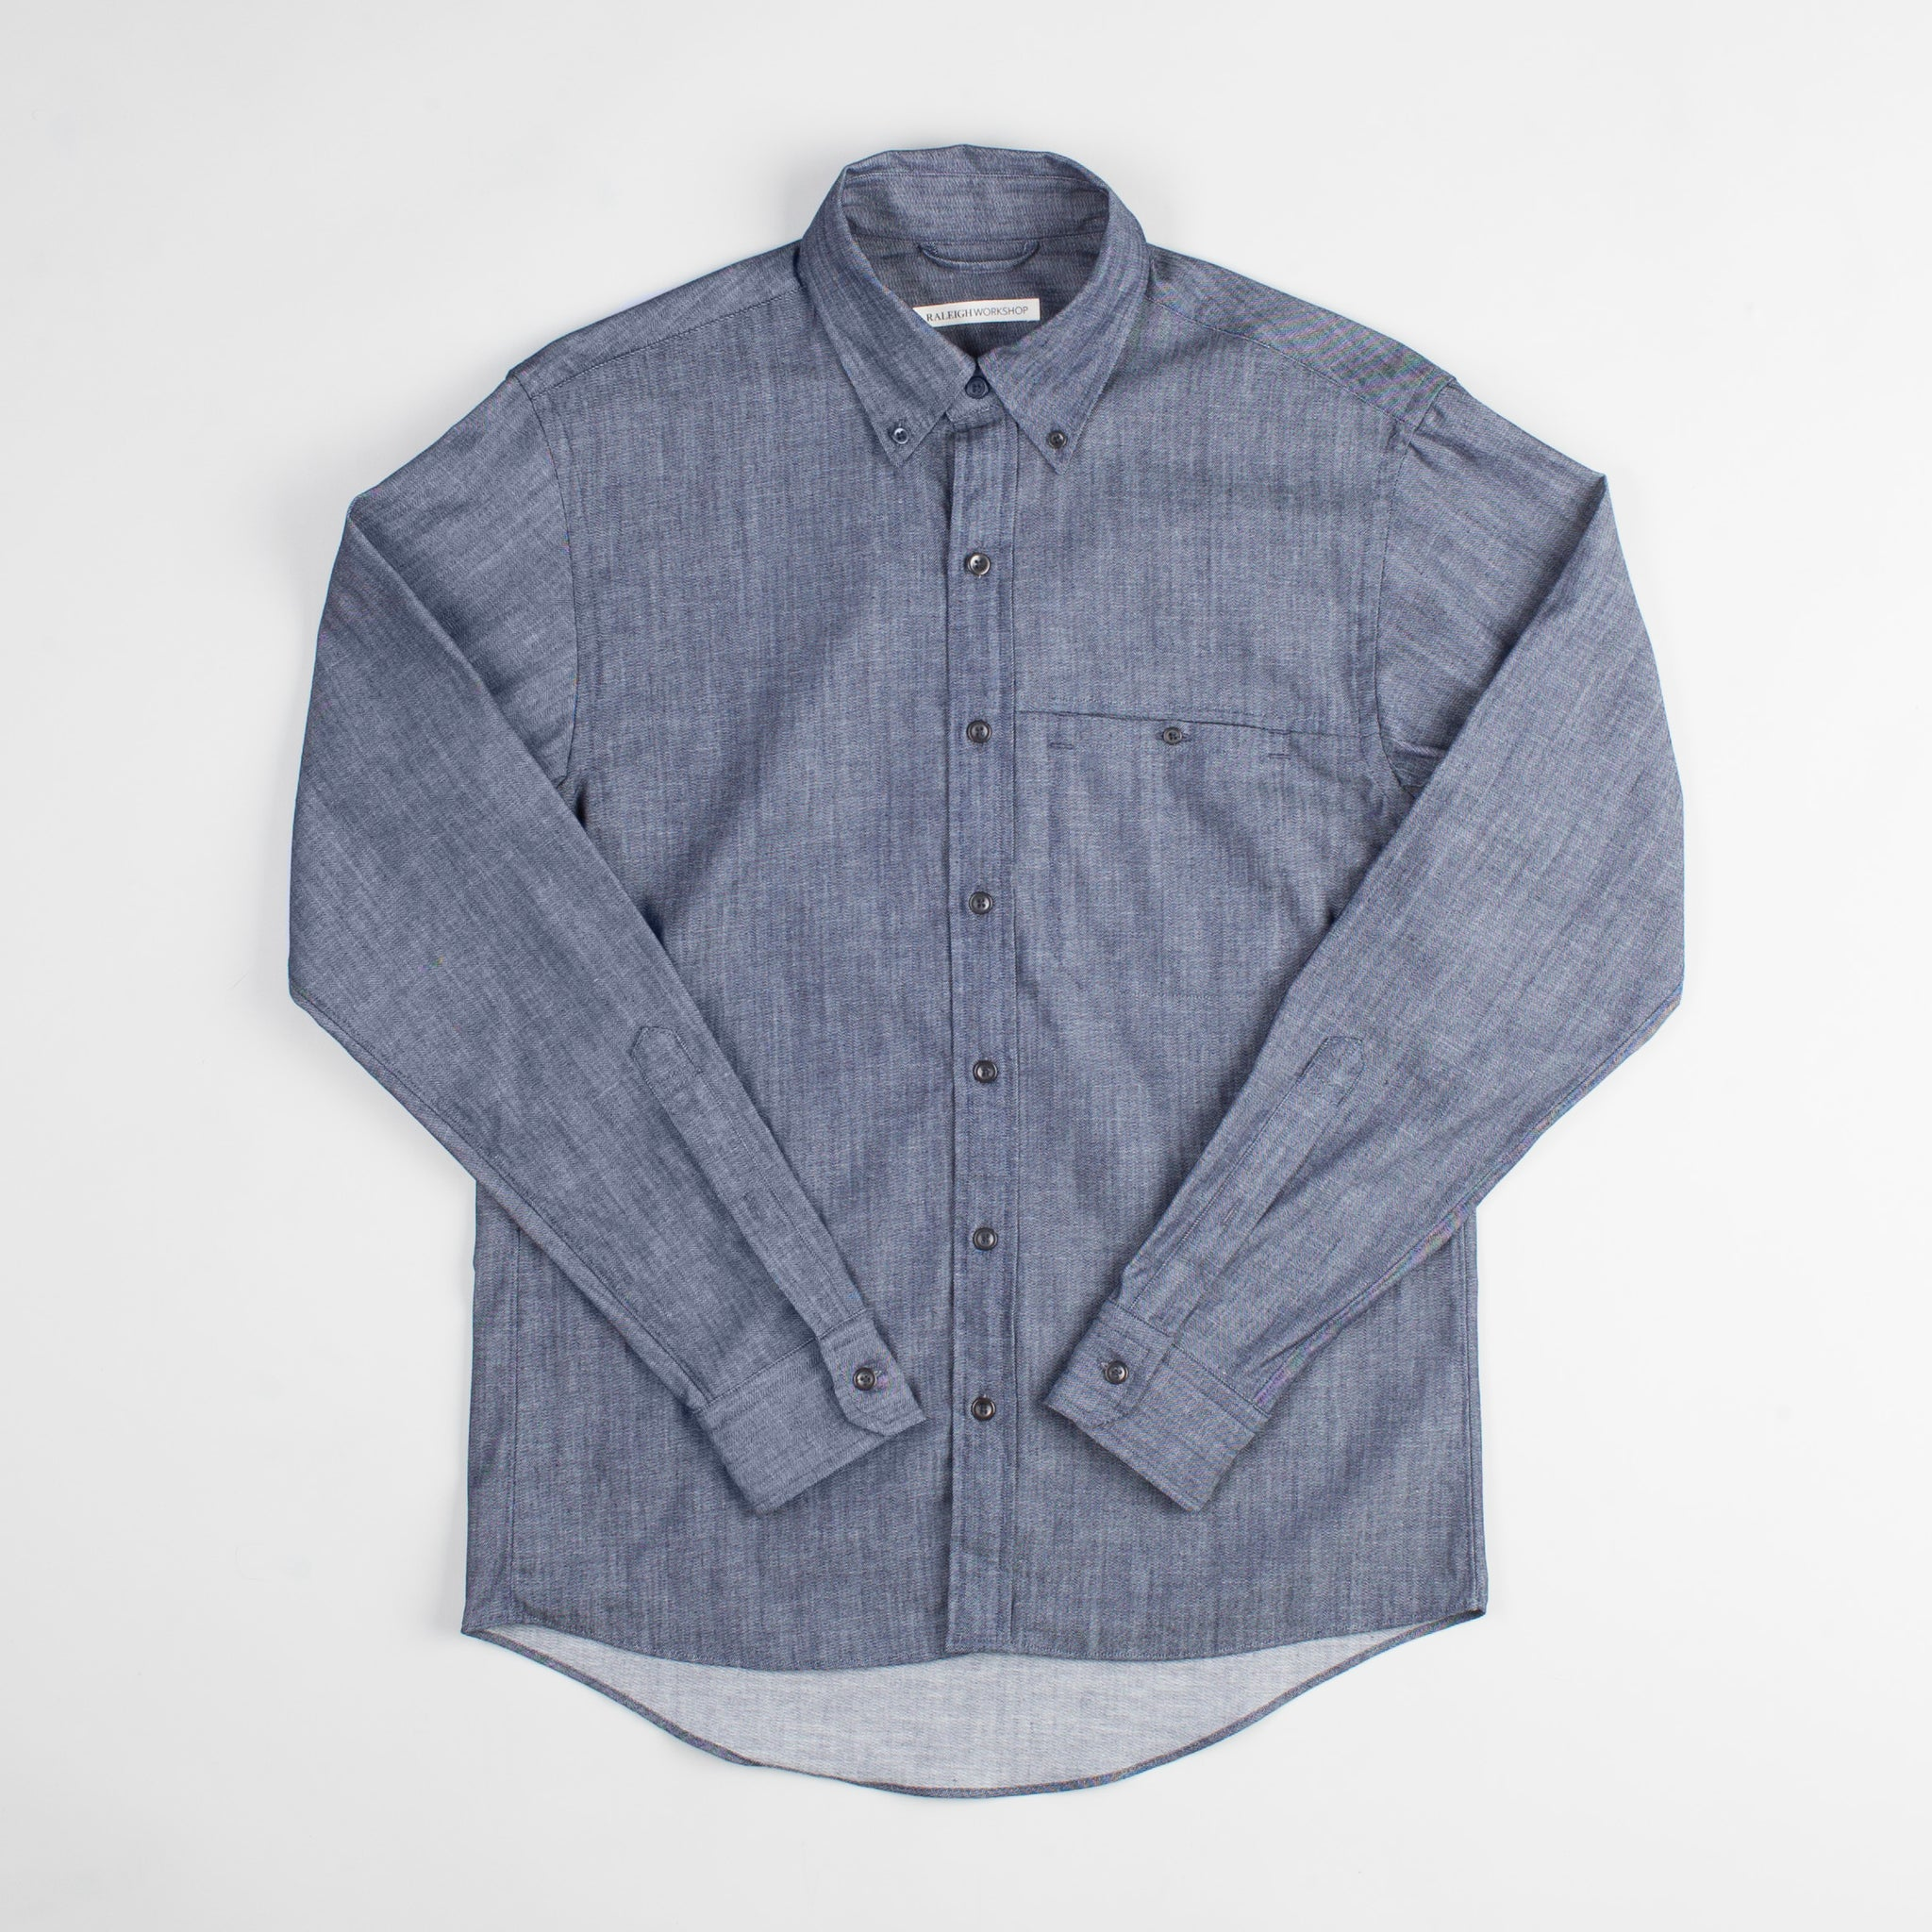 angle hover: denim  Raleigh Denim Workshop Welt-Pocket Button-up men's shirt in denim, front